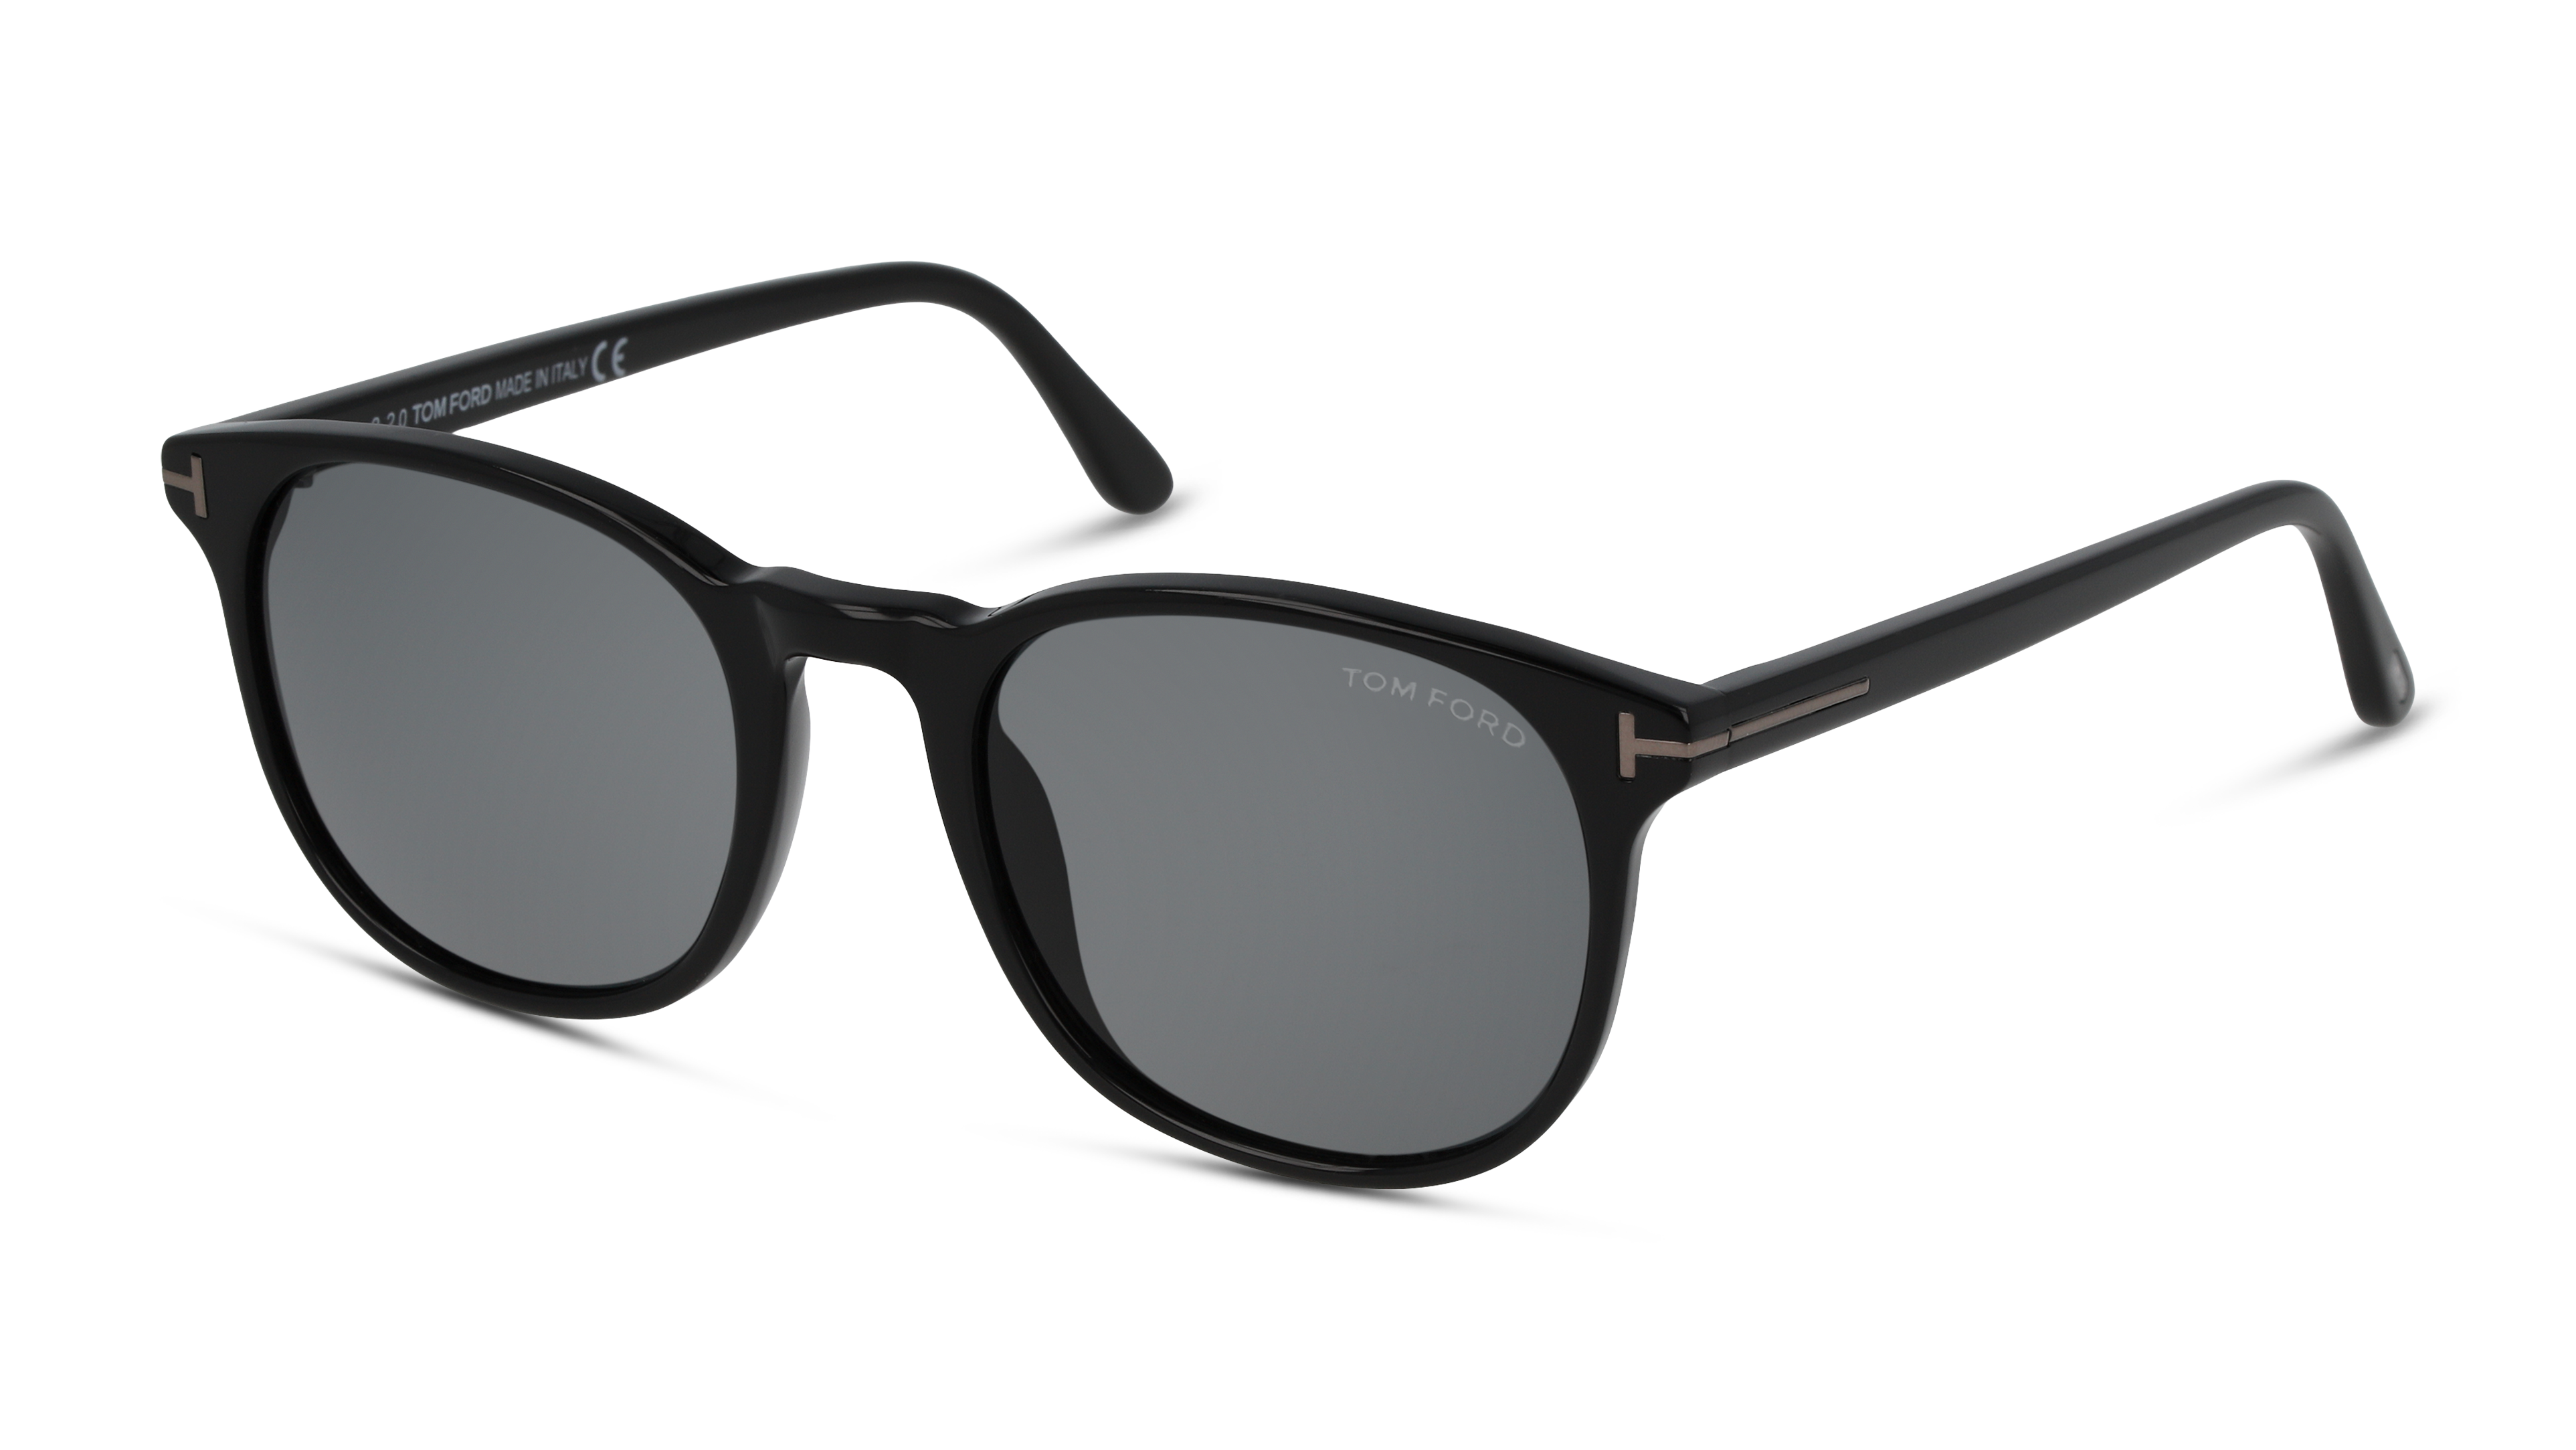 Angle_Left01 Tom Ford TomFord FT0858-N 01A 53/20 Nero/Grigio